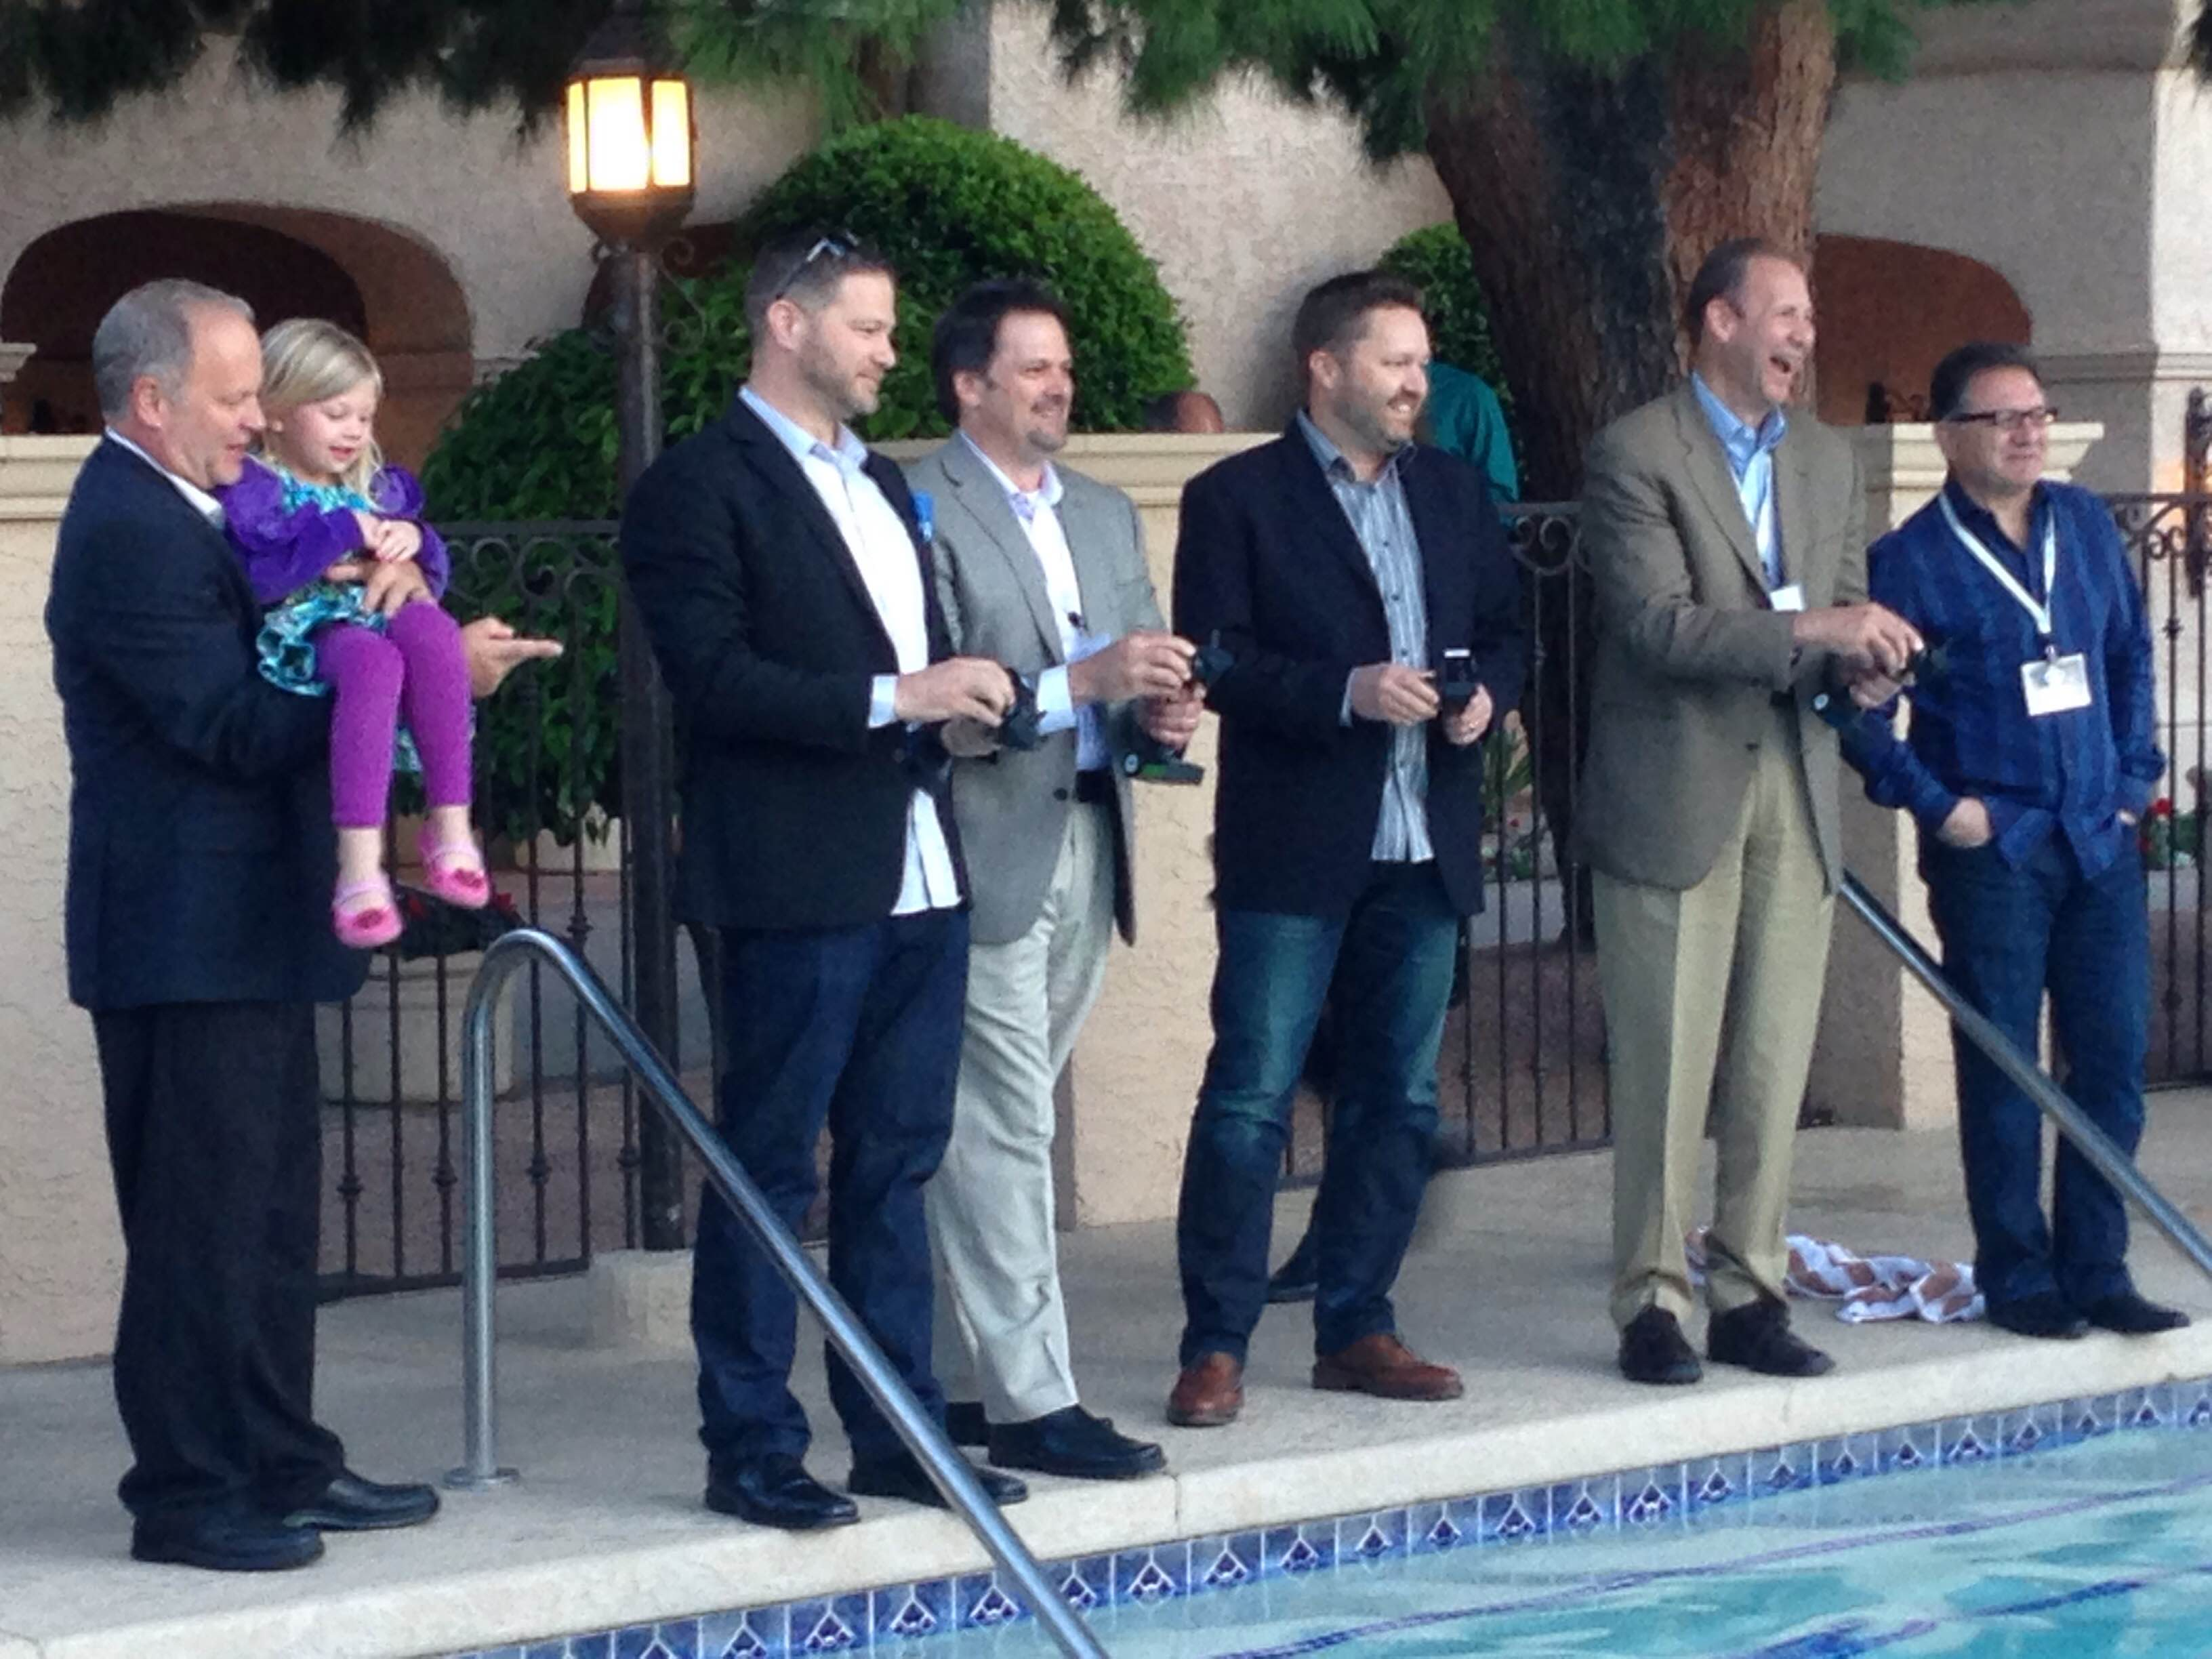 Zillow's Steve Allen, Trulia's John Whitney, Homes.com's Andy Woolley and Move's Russ Cofano compete in a boat race.